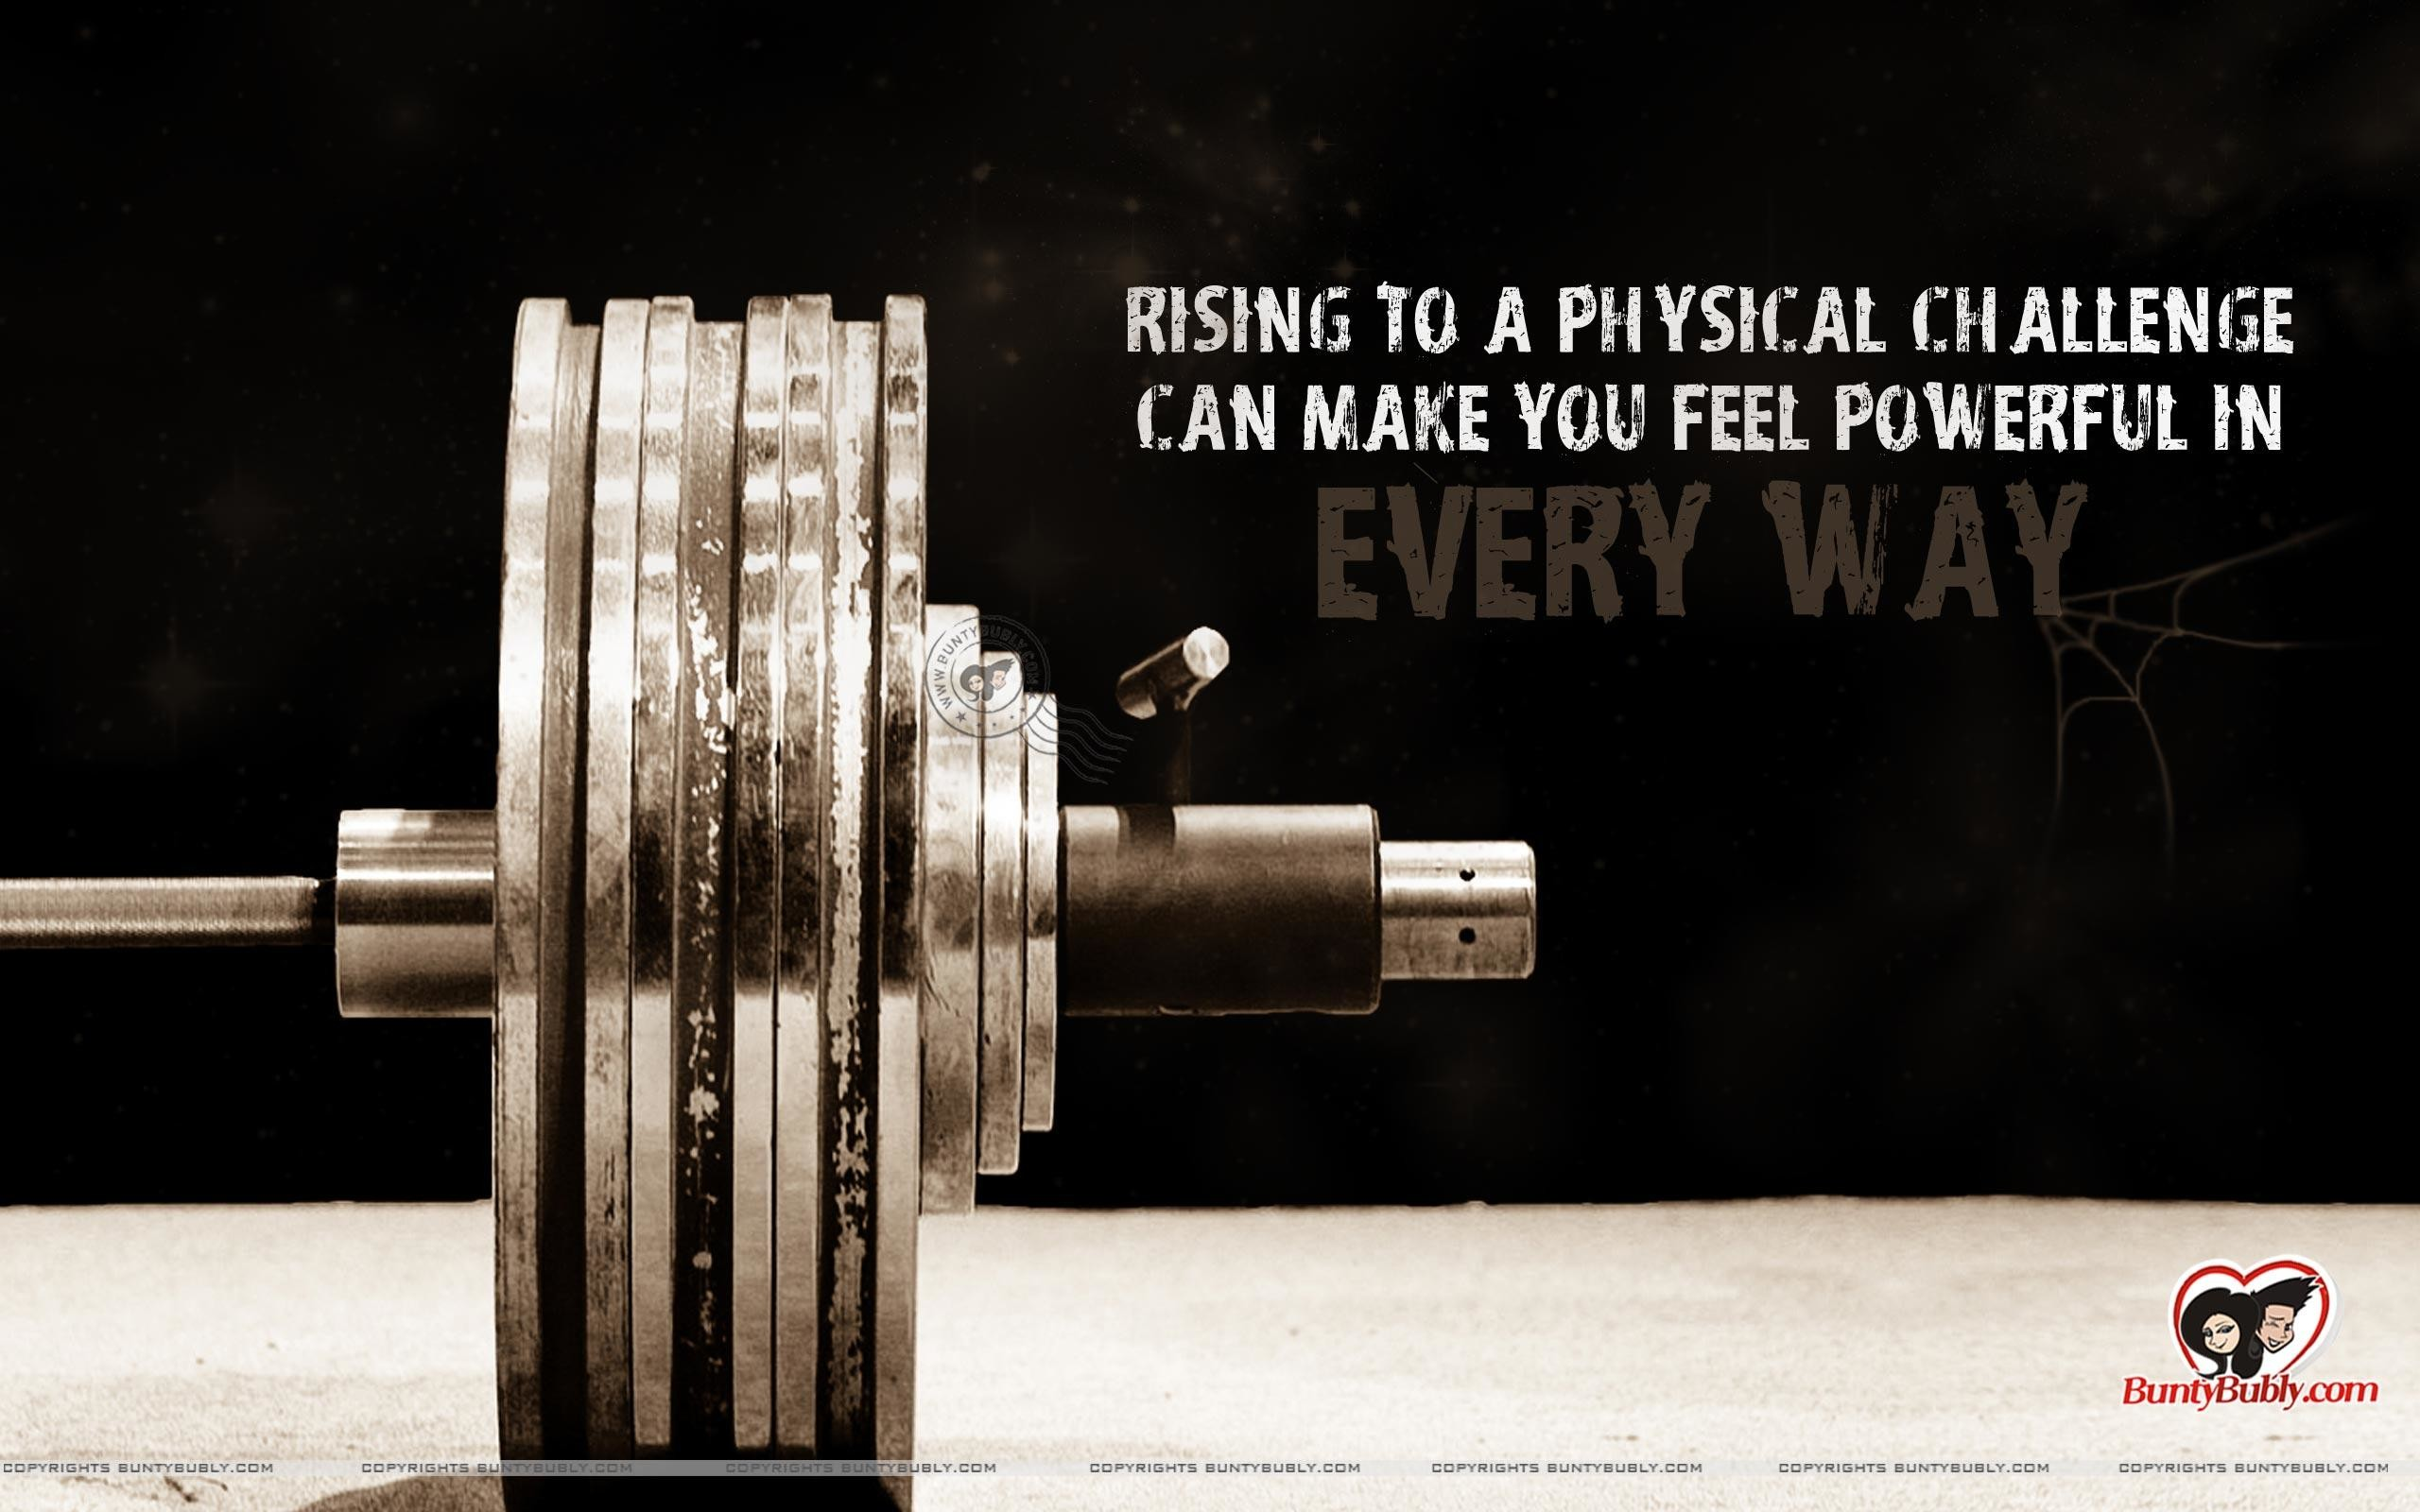 2560x1600 Image detail for -Bodybuilding Wallpaper #2 2560*1600 : Bodybuilding